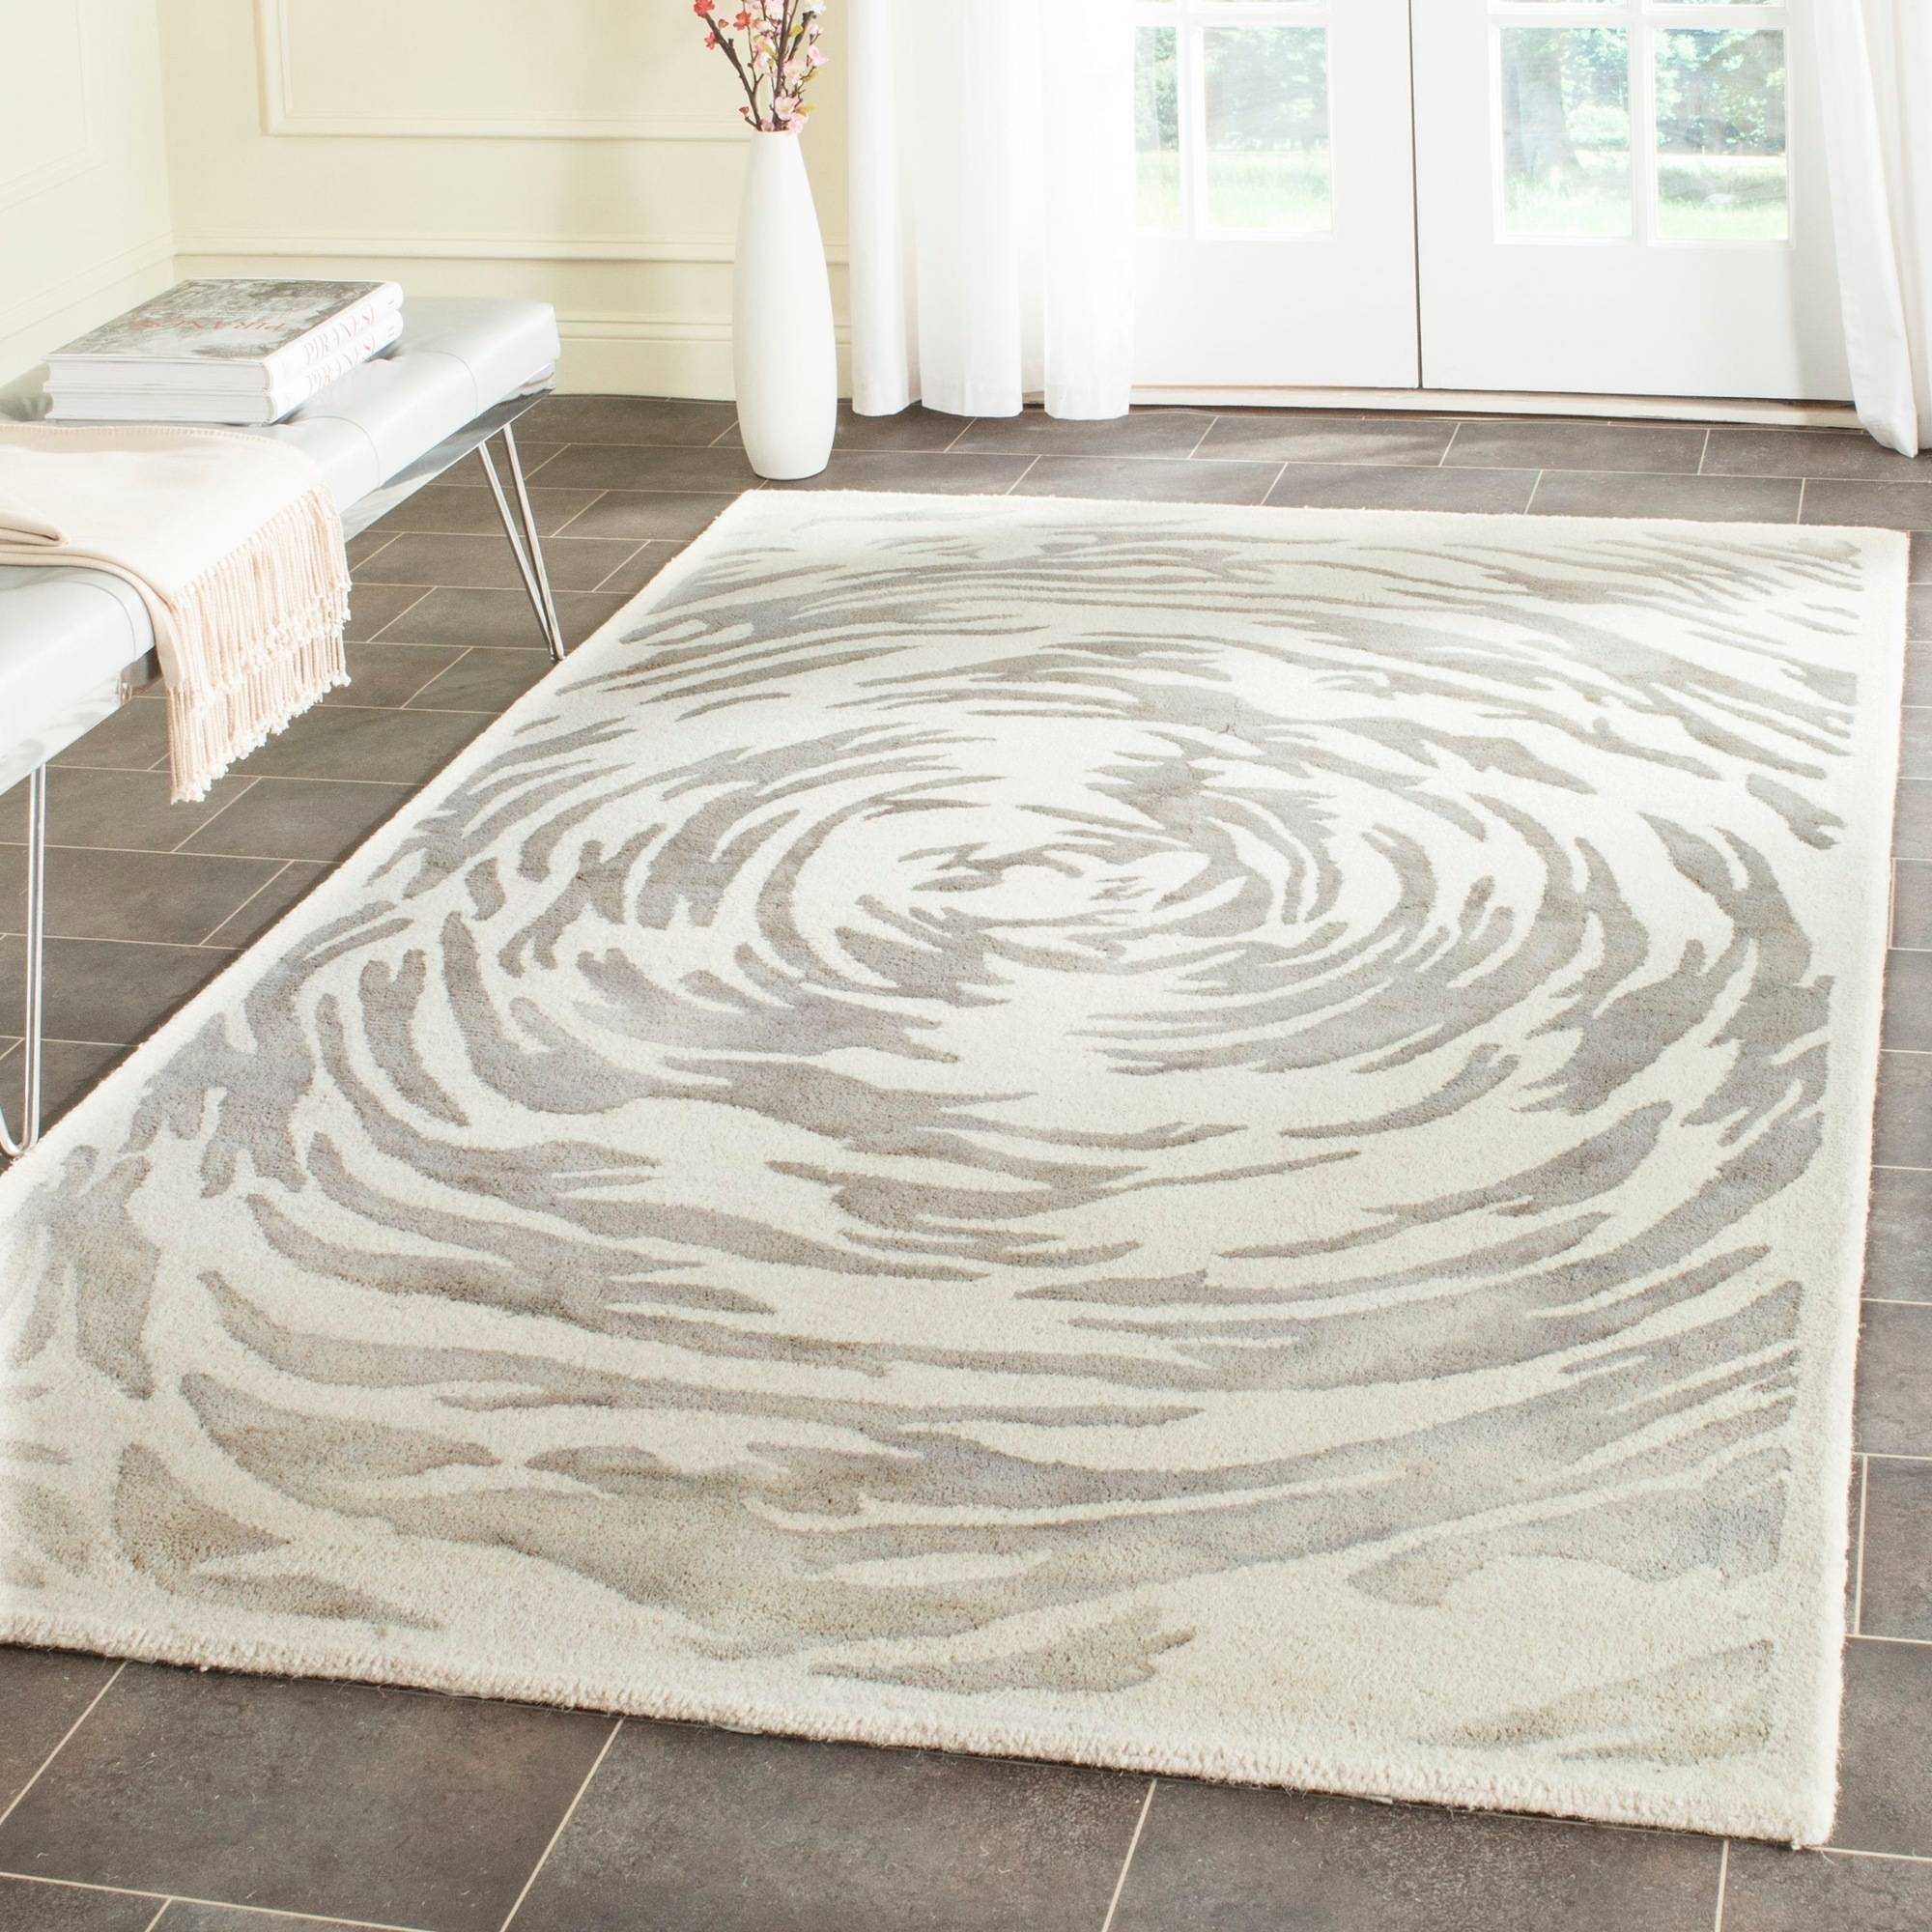 Safavieh Bella Igor Abstract Wool Area Rug or Runner